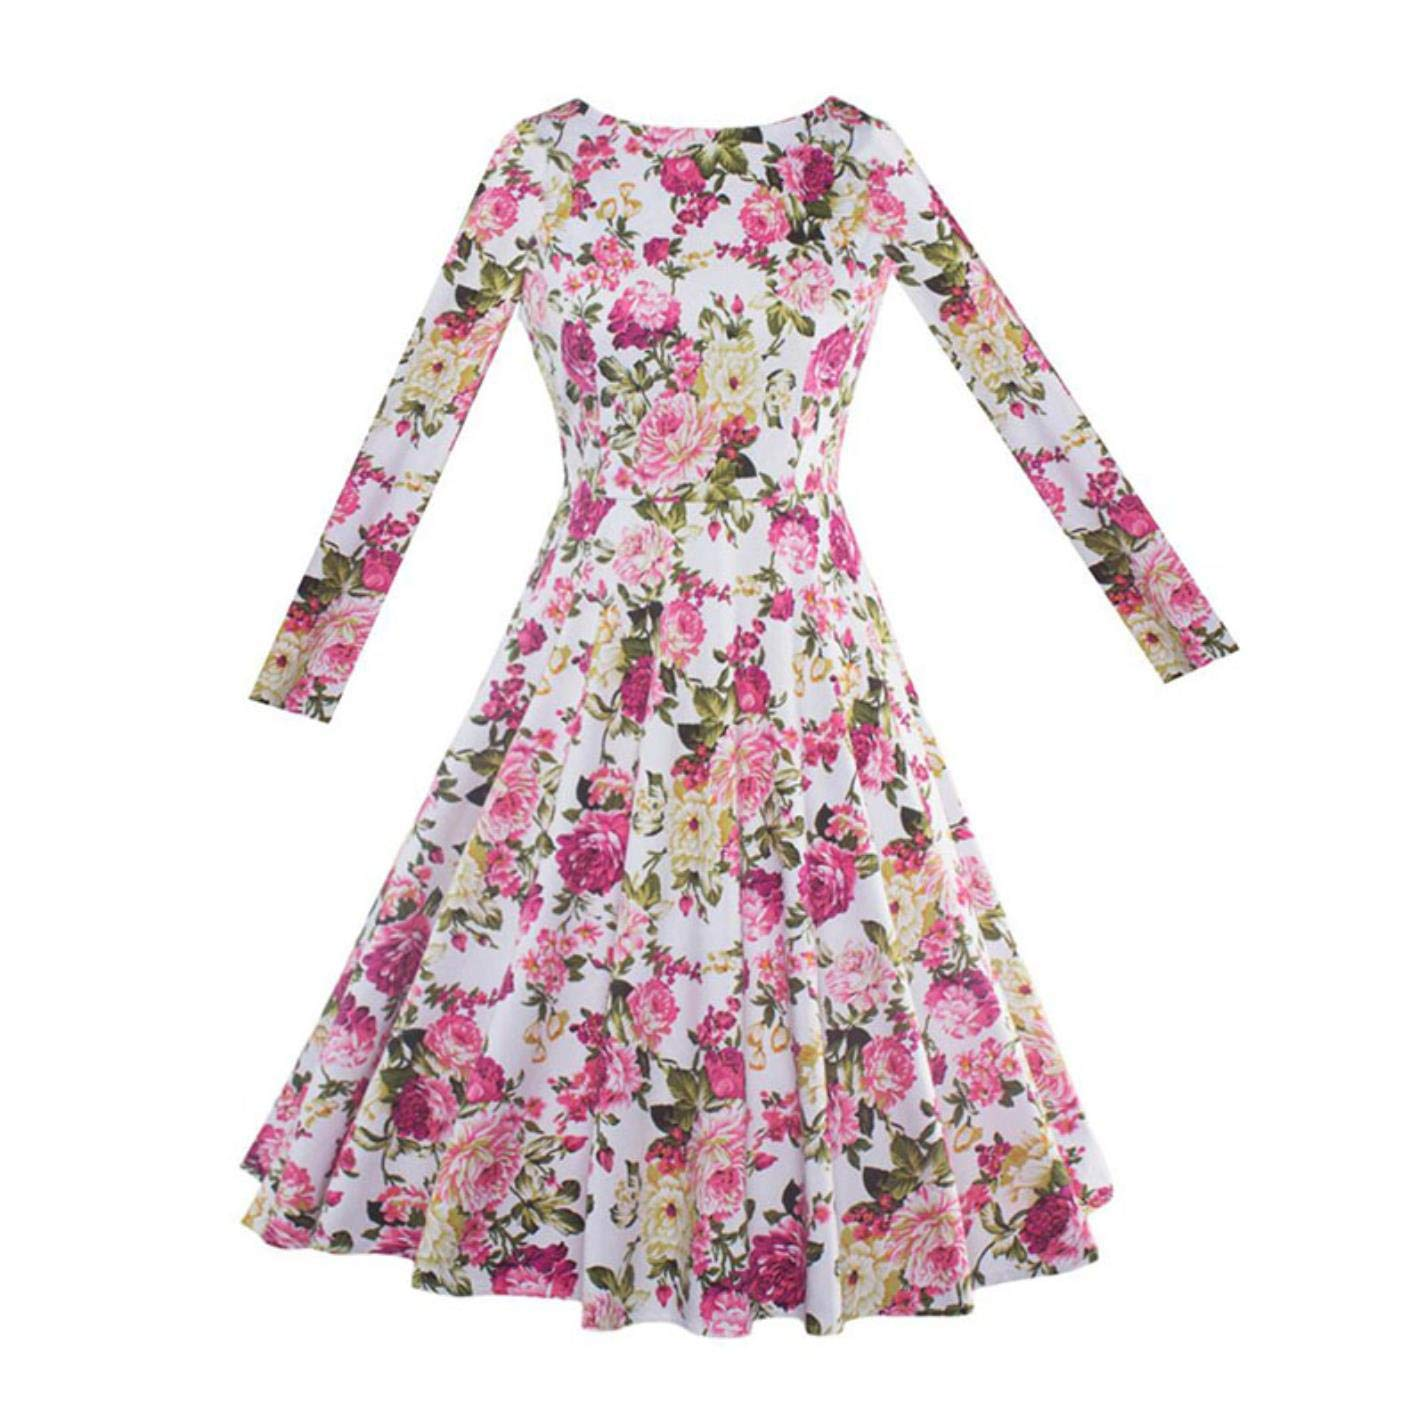 QjsIrPiX Womens Floral Party Pleated Green Long Sleeve Dress at Amazon Womens Clothing store: